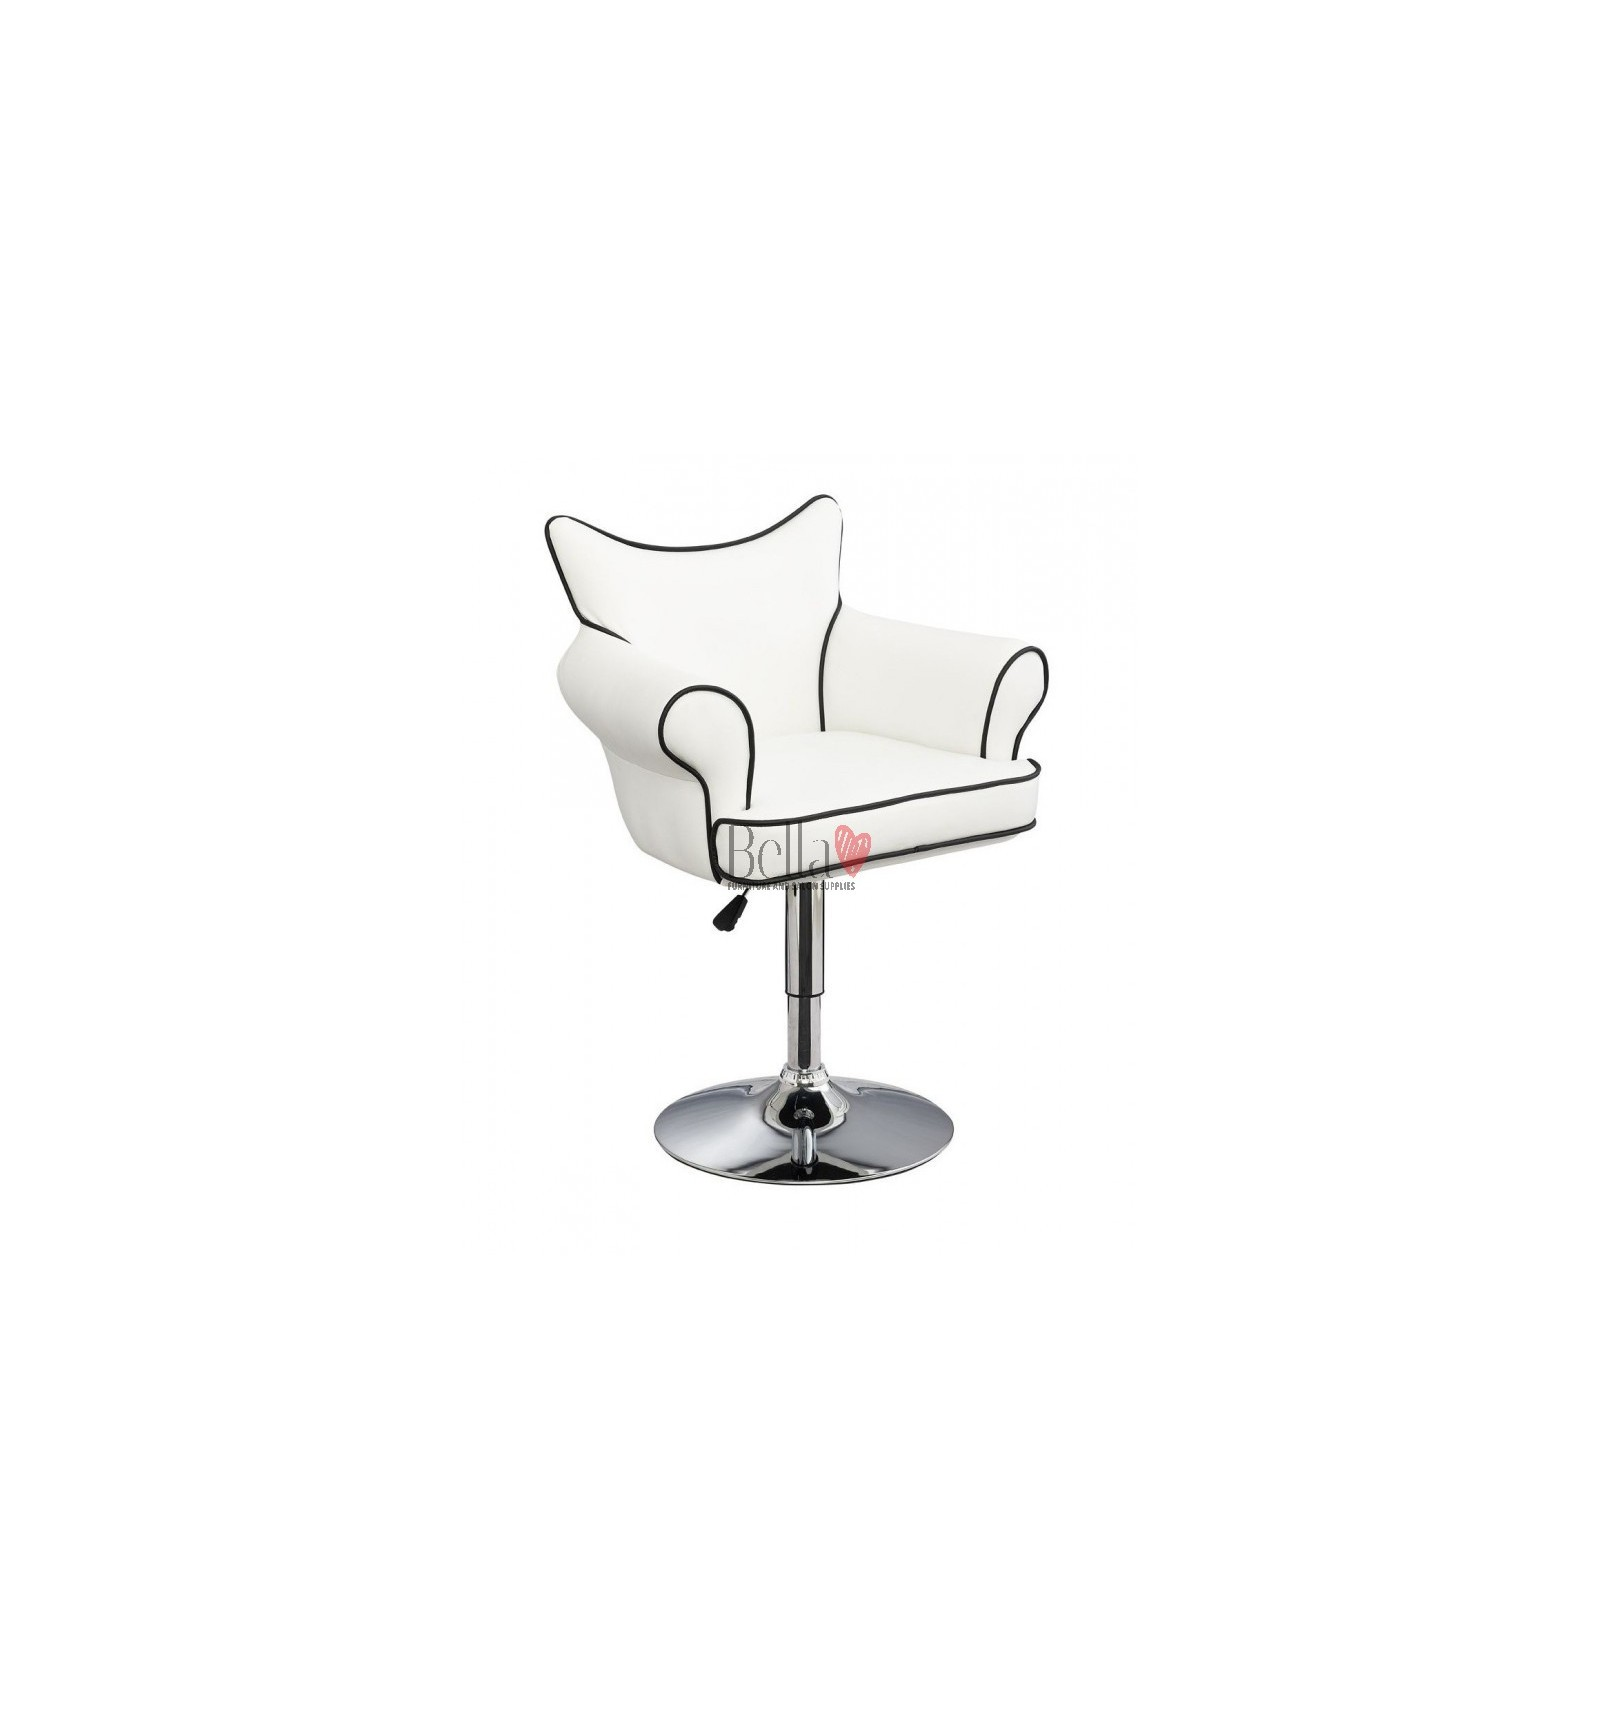 Beauty Salon Chair Modern Chairs For Beauty Salon Modern Salon Chairs Hairdresser Chair